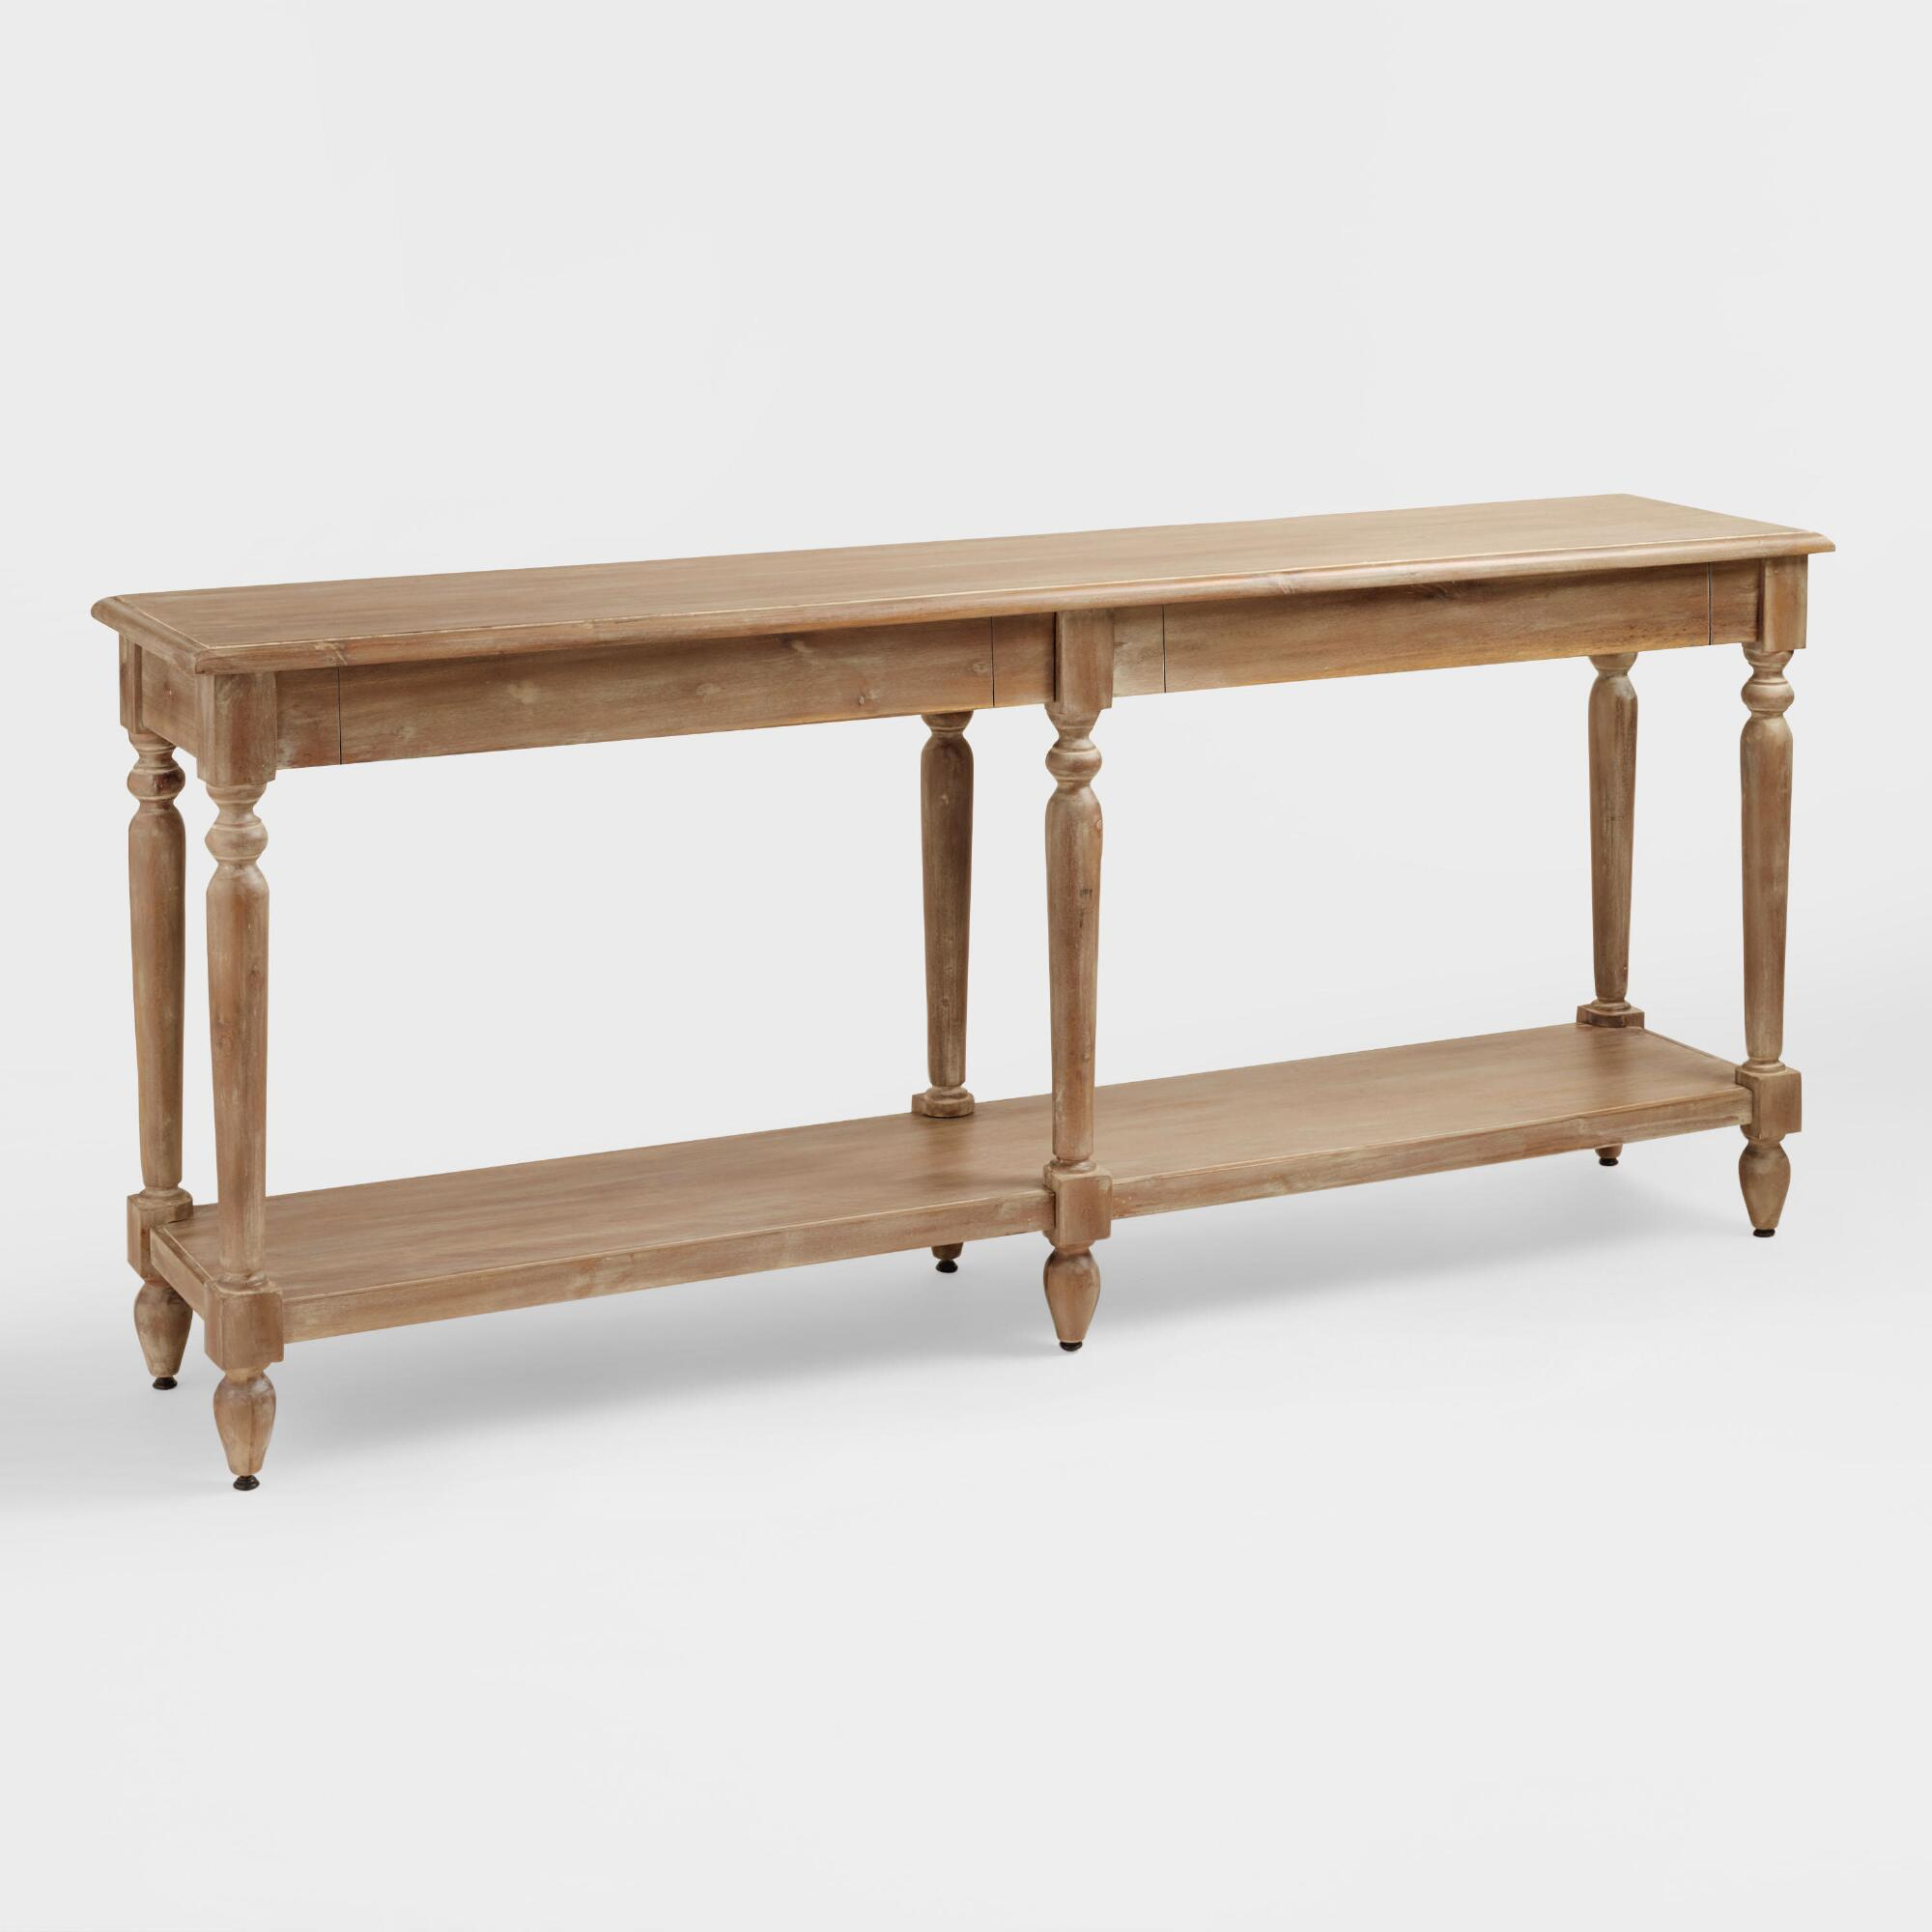 Foyer Table Deals : Daily deals friday january